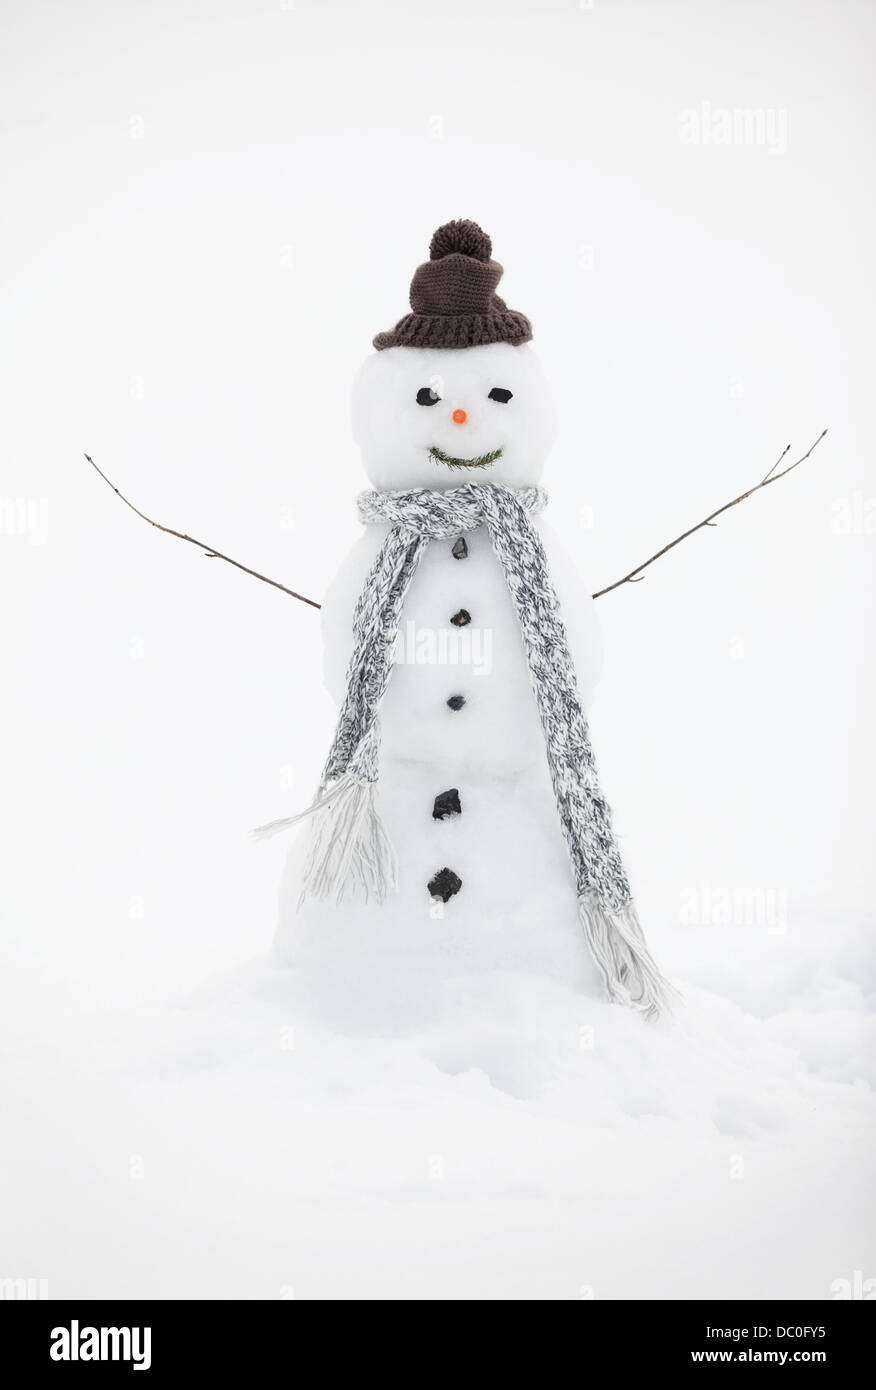 Snowman wearing knit hat and scarf - Stock Image